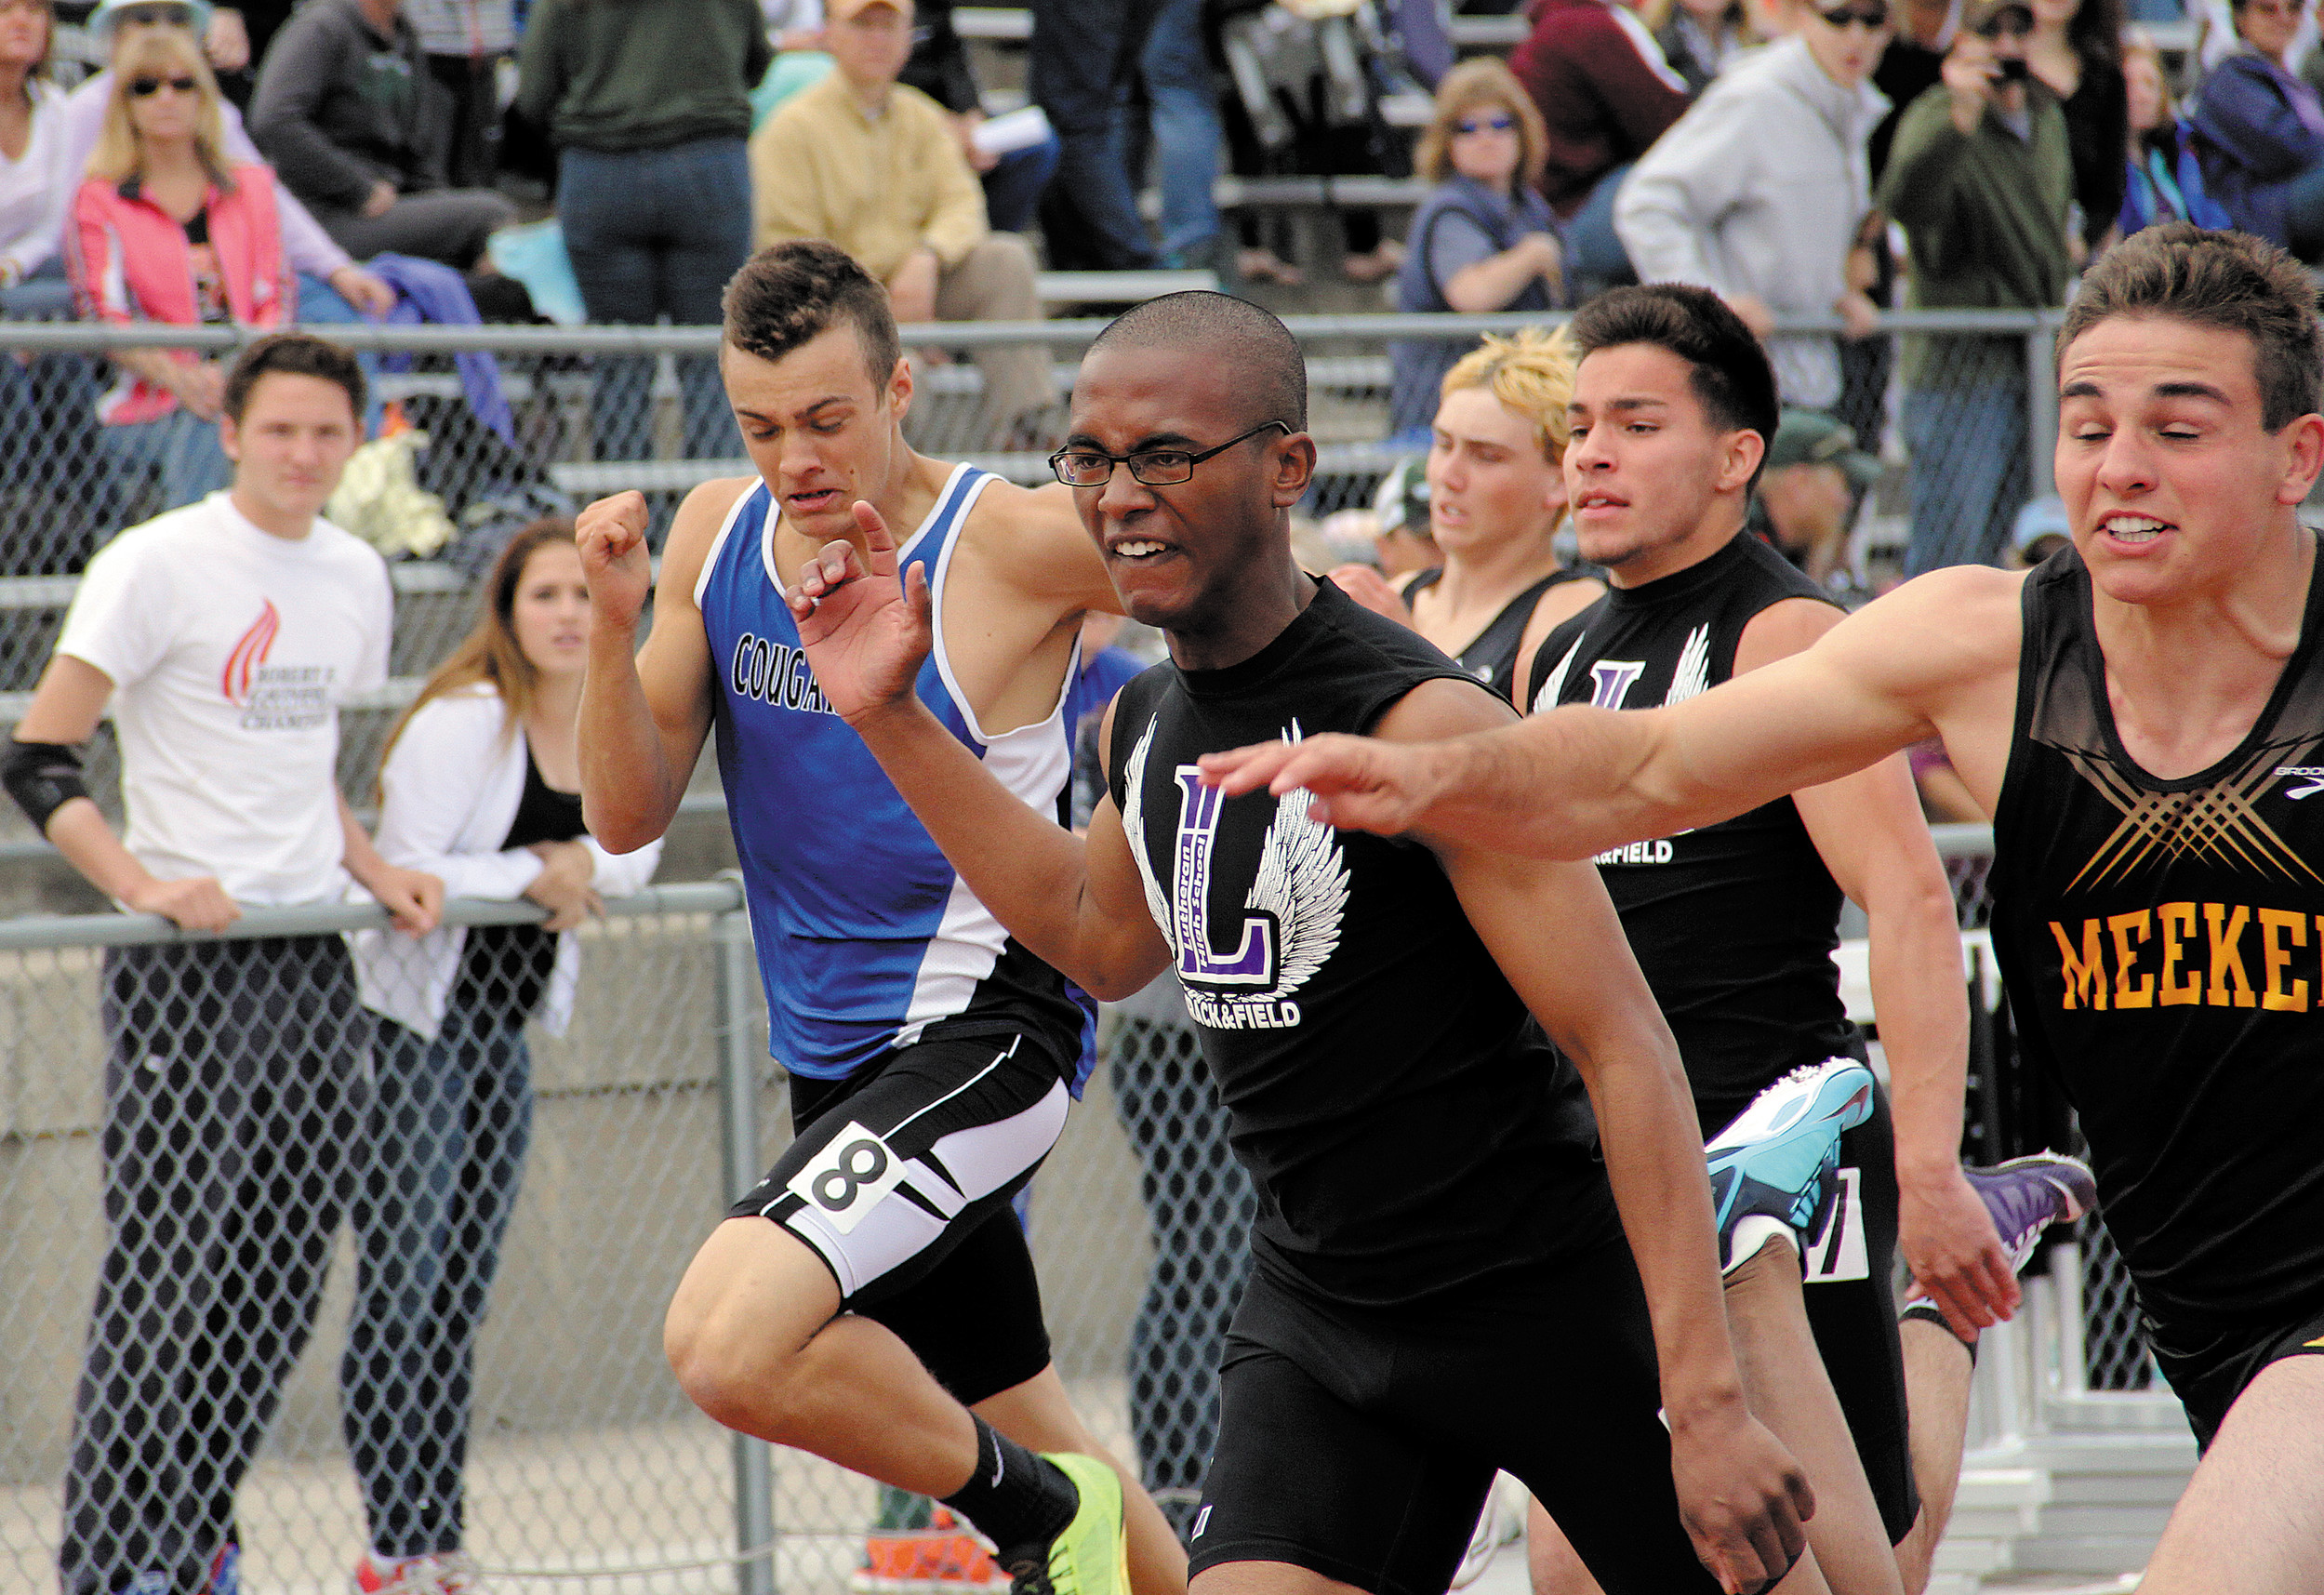 A late thrust by Meeker's Trenton Shelton, far right, gave him the 100 meter win over Lutheran sophomore Chris Youngs, center. The two finished one-two in the preliminary heat and owned the fastest two times in the event heading into the Class 2A finals held later in the weekend in Lakewood.